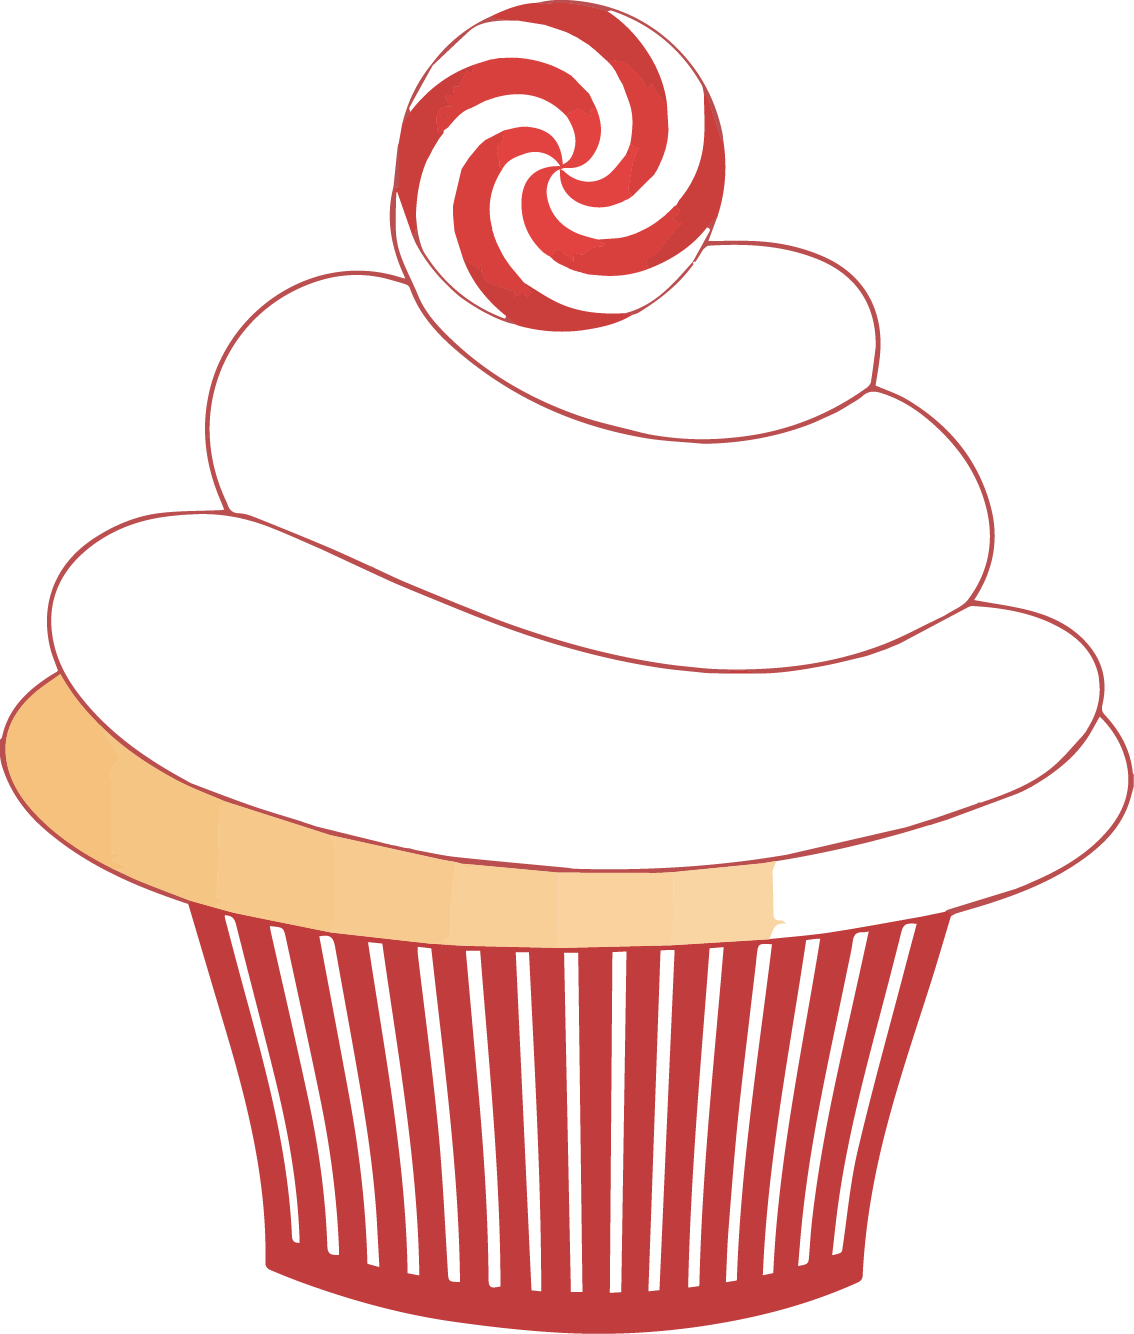 Muffins clipart group. Baking cupcake tray clip